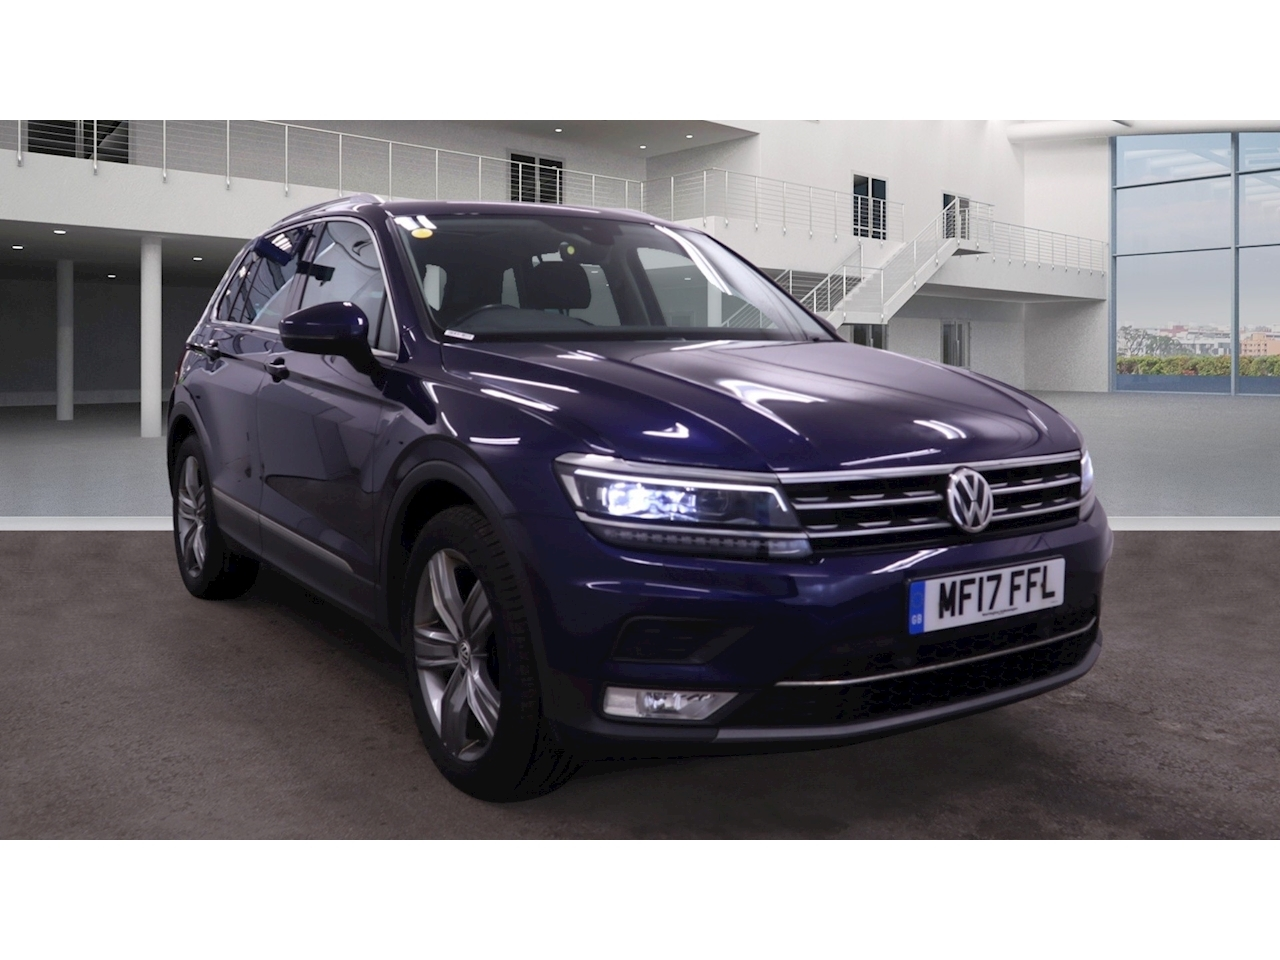 2.0 TDI BlueMotion Tech SEL SUV 5dr Diesel (s/s) (150 ps)